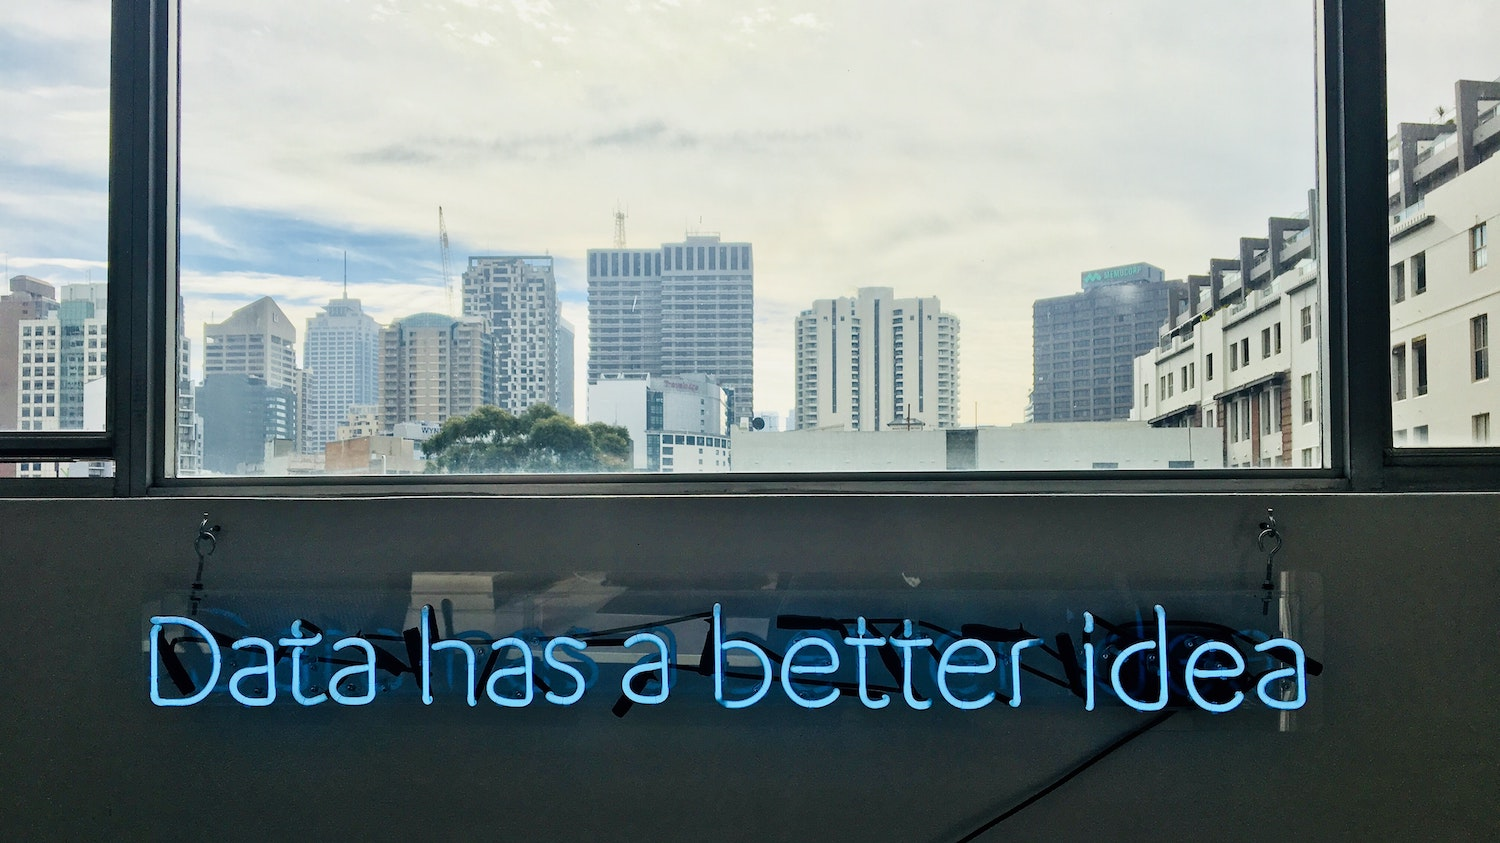 data has a better idea neon sign